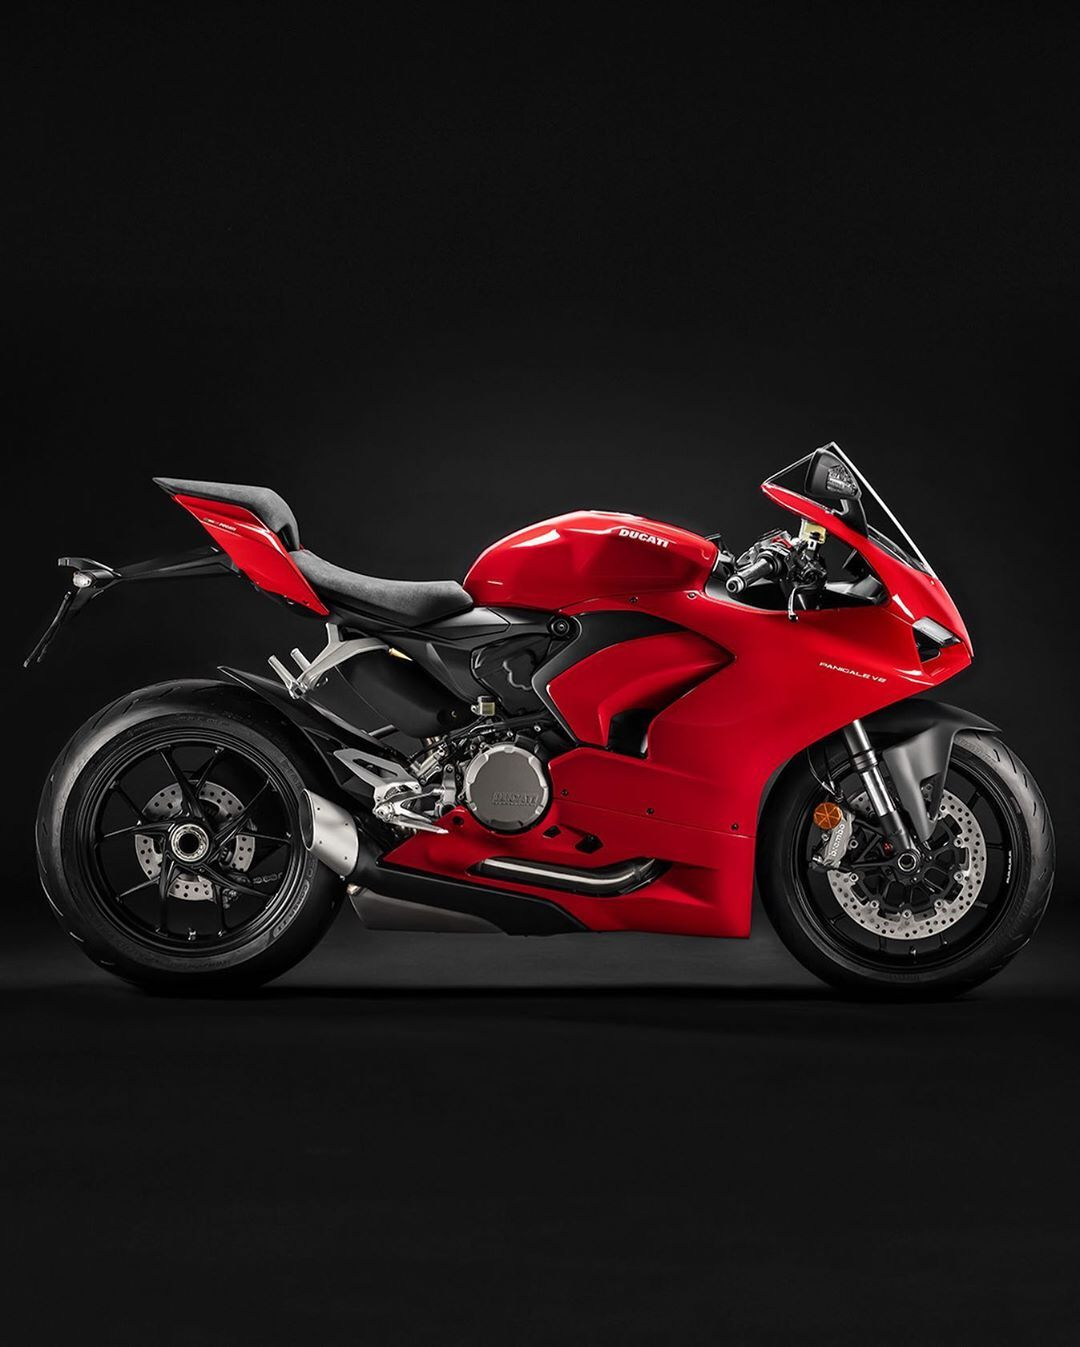 62 5k Likes 233 Comments Ducati Motor Holding Ducati On Instagram New Panigale V2 The Red Essence The Ducati Motorcycles Ducati Panigale Ducati Motor